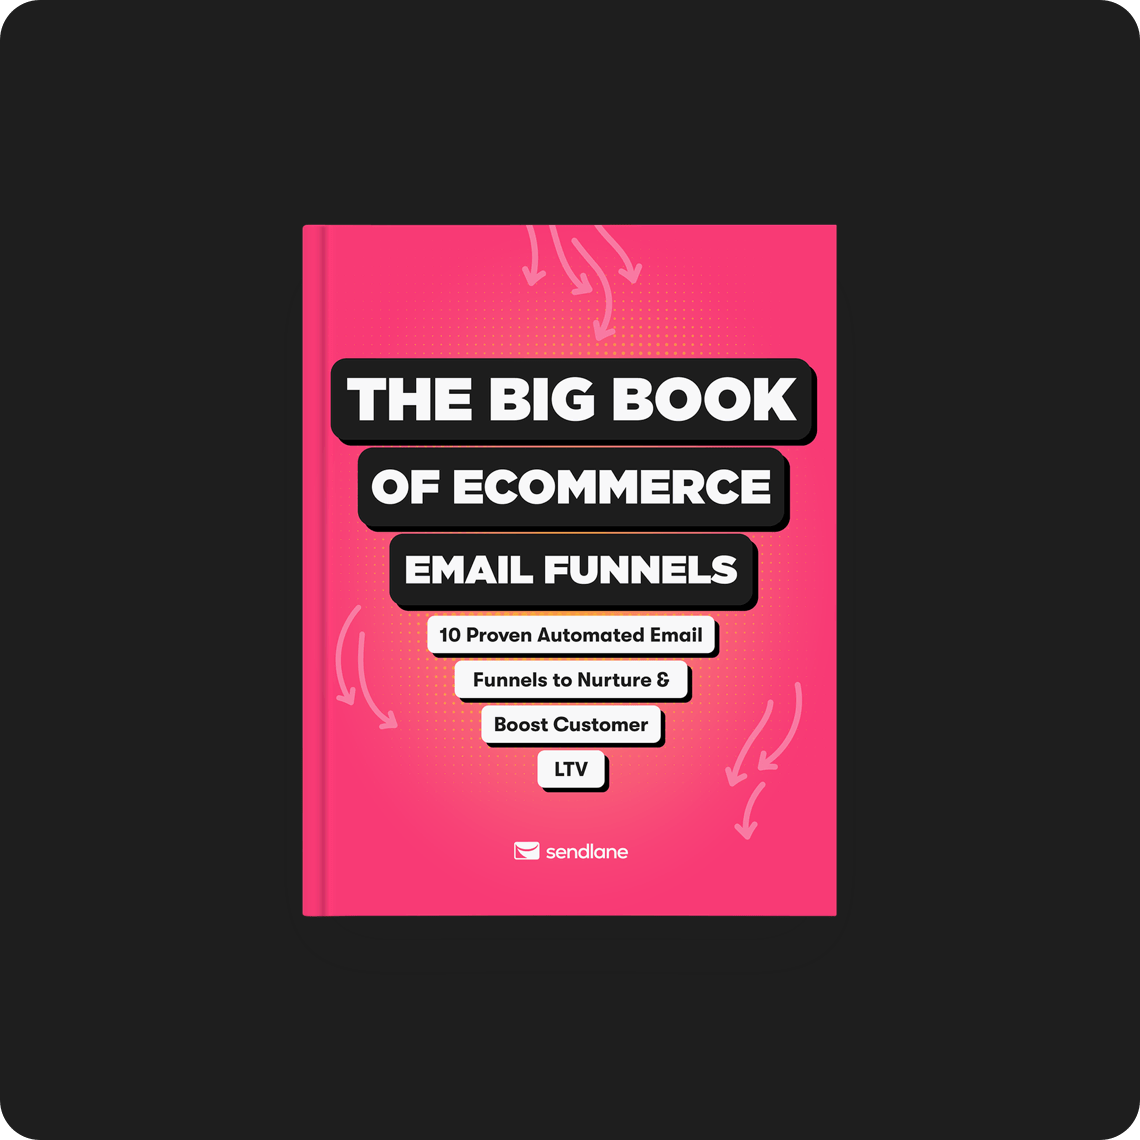 The Big Book of eCommerce Email Funnels